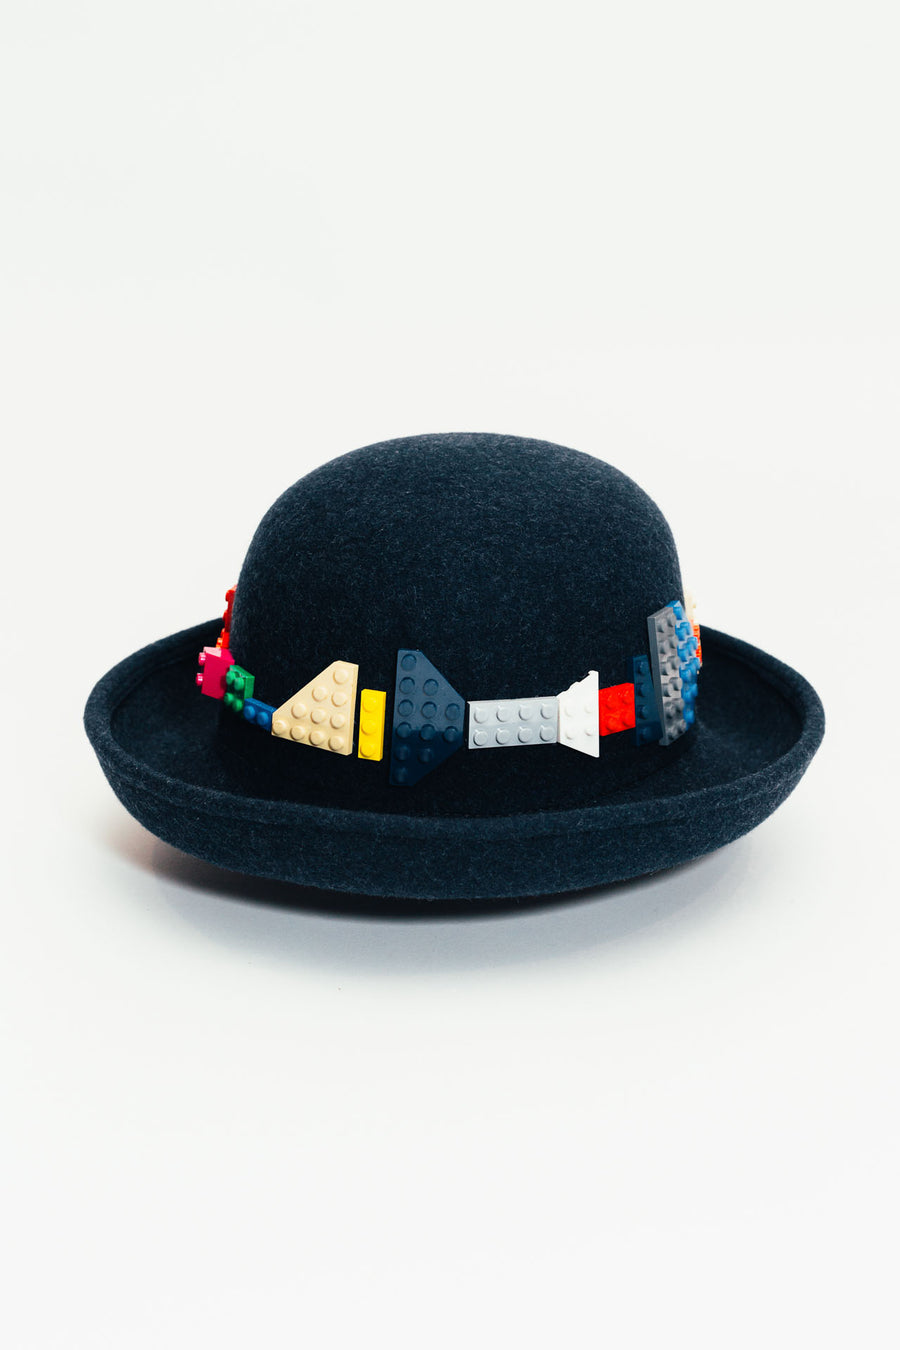 Bricks Rainbow Bowler Hat